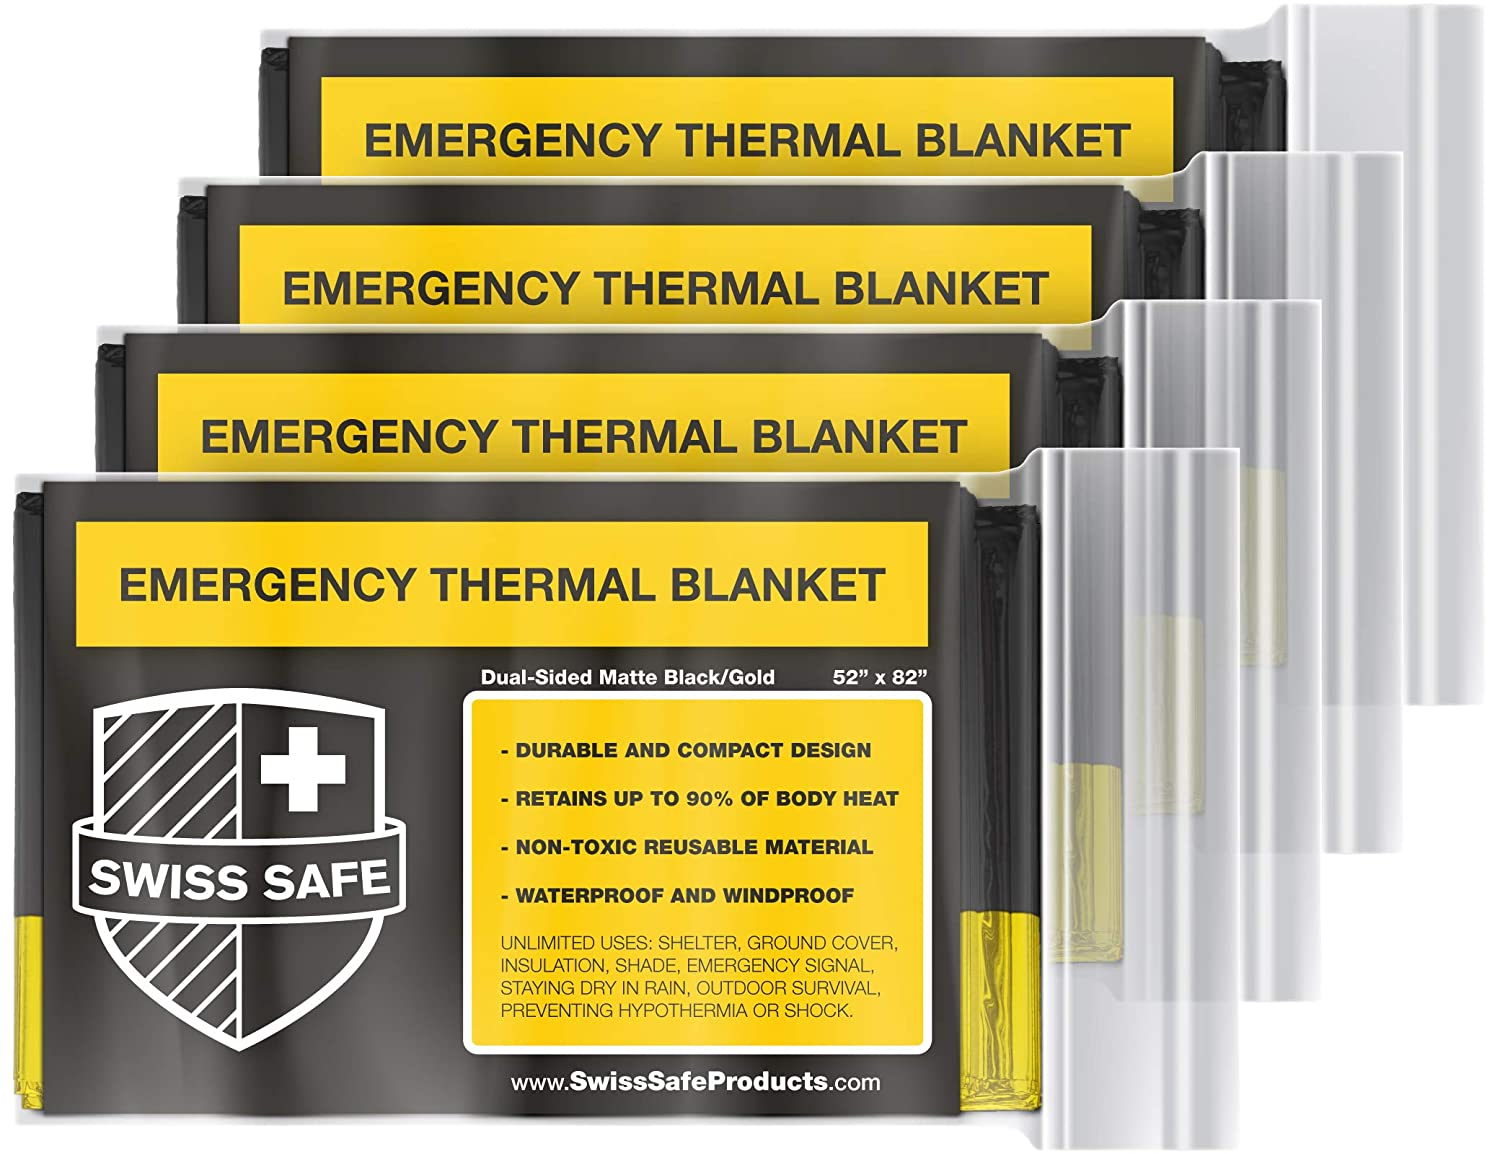 Swiss Safe Emergency Mylar Thermal Blankets (4-Pack) + Bonus Signature Gold Foil Space Blanket: Designed for NASA, Outdoors, Hiking, Survival, ...